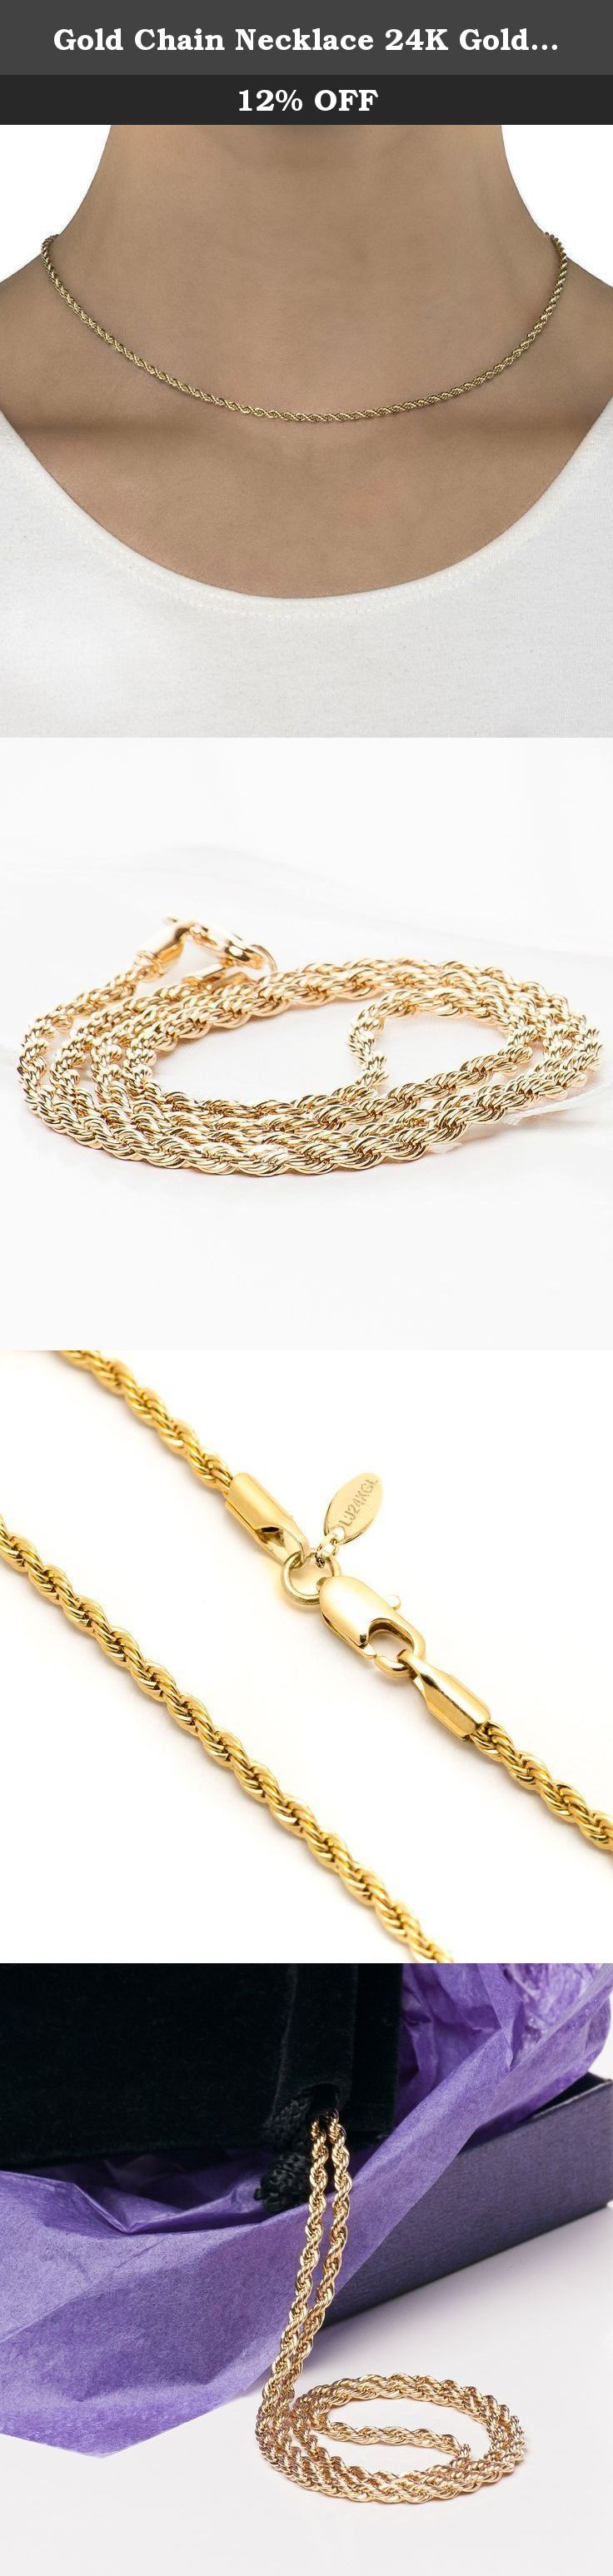 """Gold Chain Necklace 24K Gold Overlay USA Made LIFETIME WARRANTY, 30x Thicker than plated, 2 MM Wide Gold Rope Chain, Men & Women Tarnish Resistant 16""""-30"""", Lobster Clasp, Look of Solid Gold (20""""). Be the most stunning person in the crowd when you wear this Rope Chain Necklace by Lifetime Jewelry ! Coated with 24-karat gold over a heart of semi-precious metals, this rope chain necklace is stunningly beautiful. It looks charming on anyone and is perfect to wear on any occasion. This rope…"""